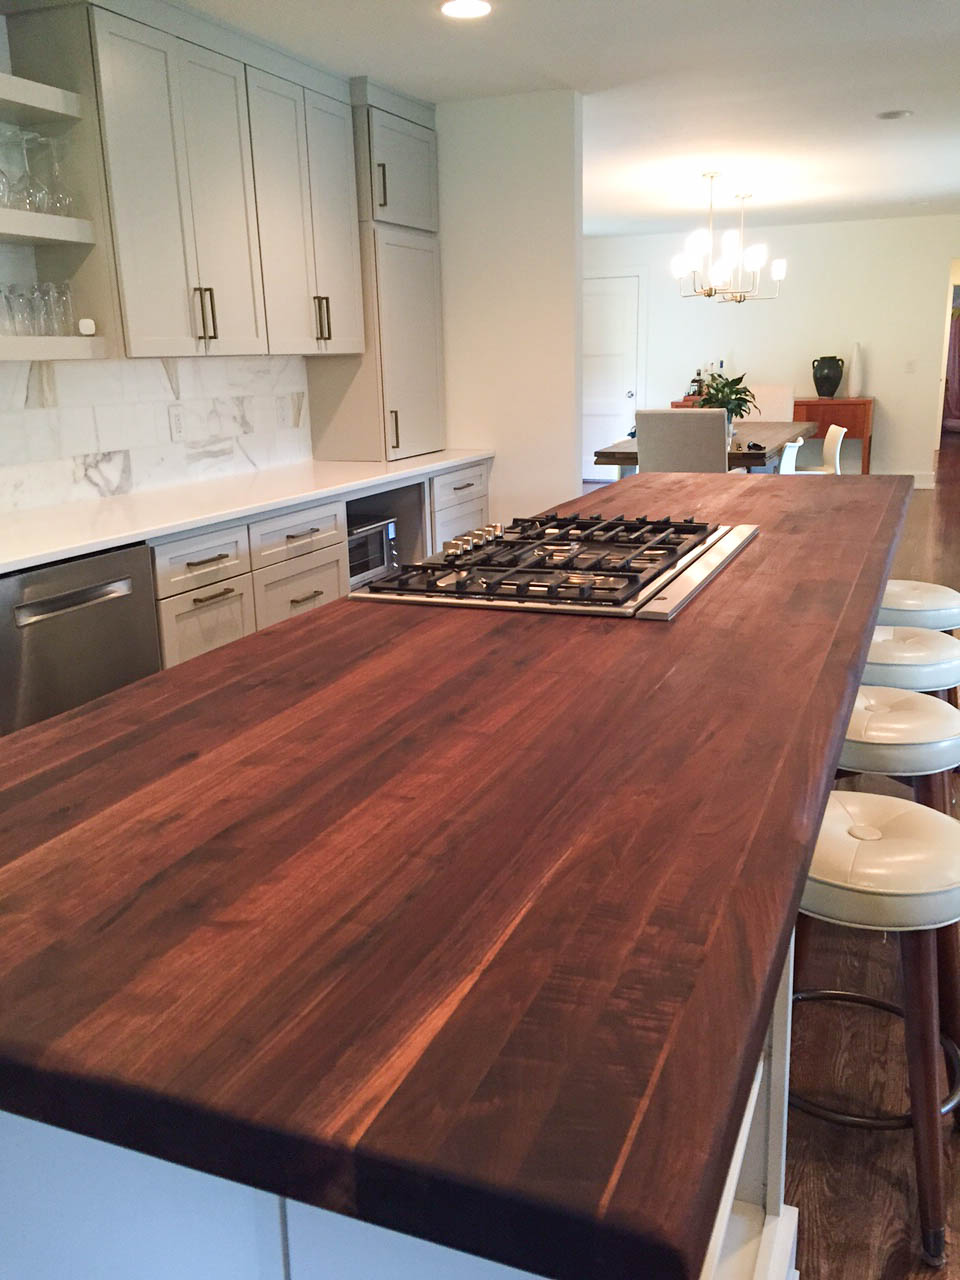 Gallery Customer Submitted Images Walnut Wood Works